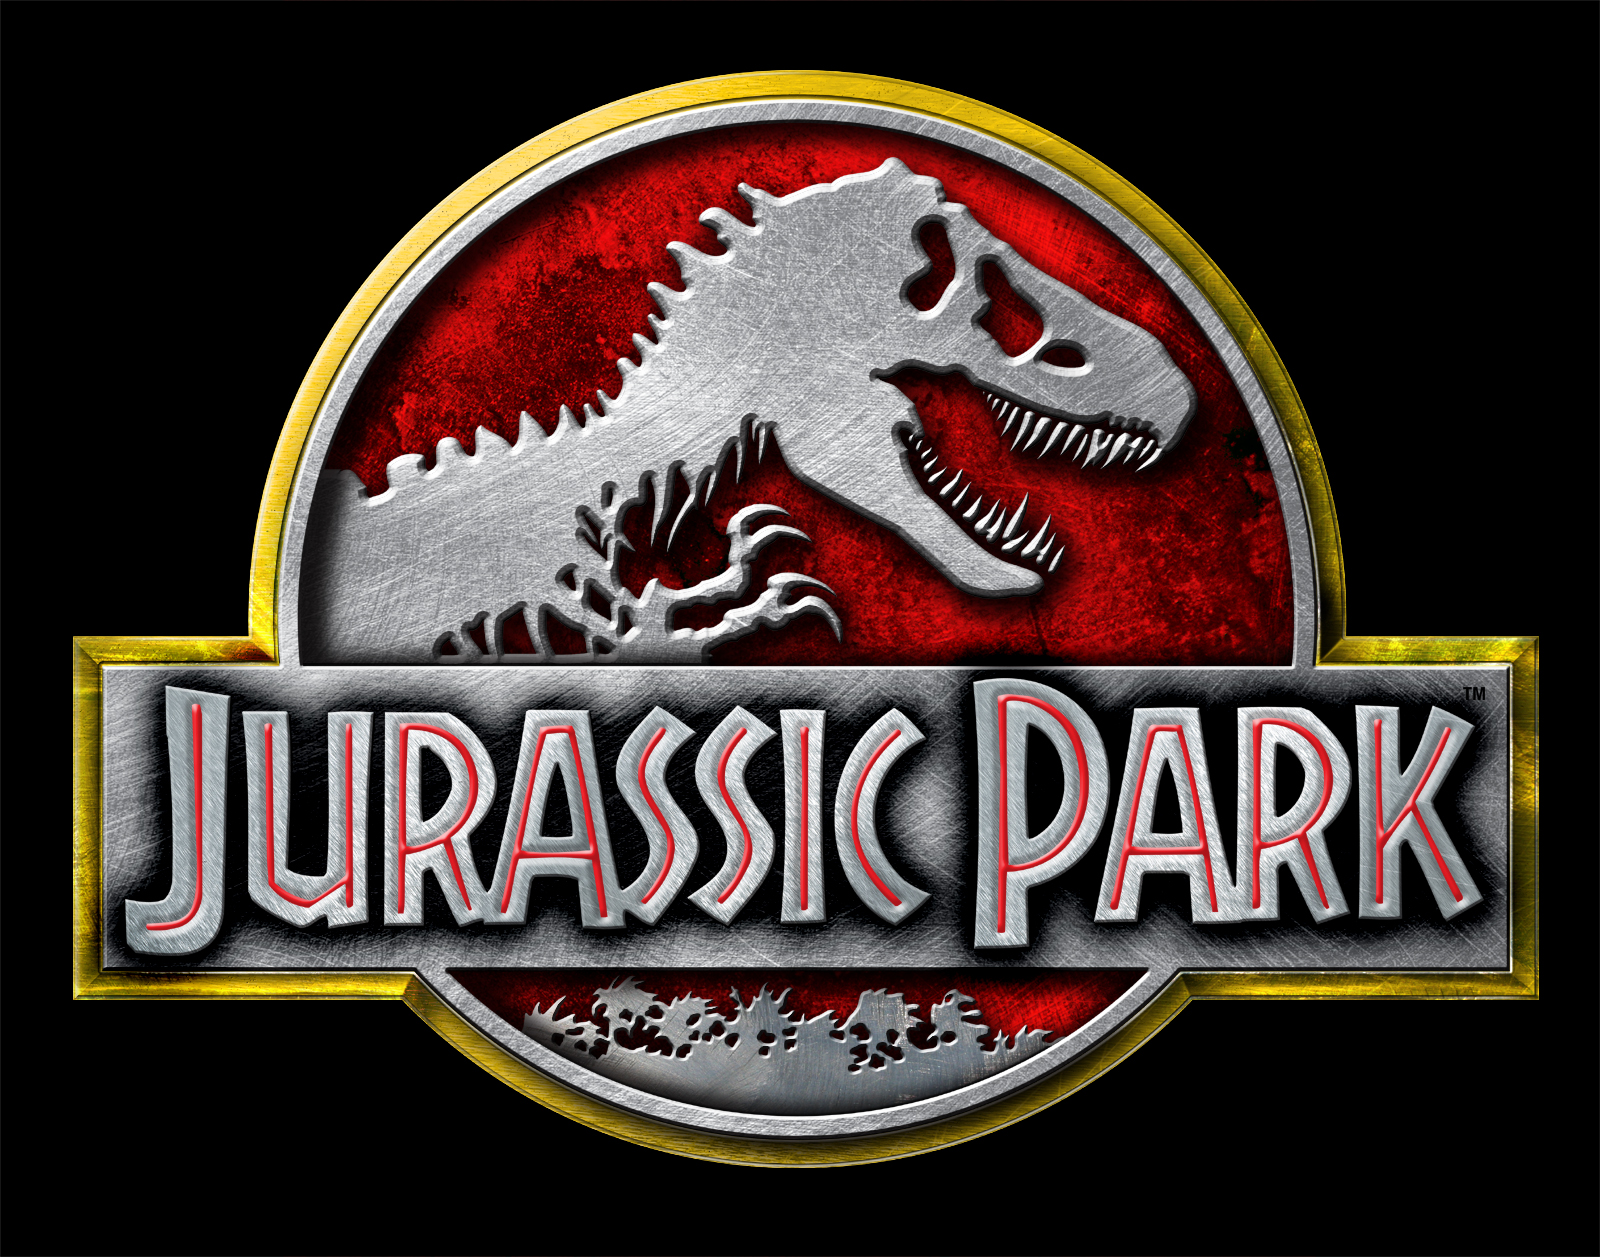 jurassic park latest pictures - photo #41